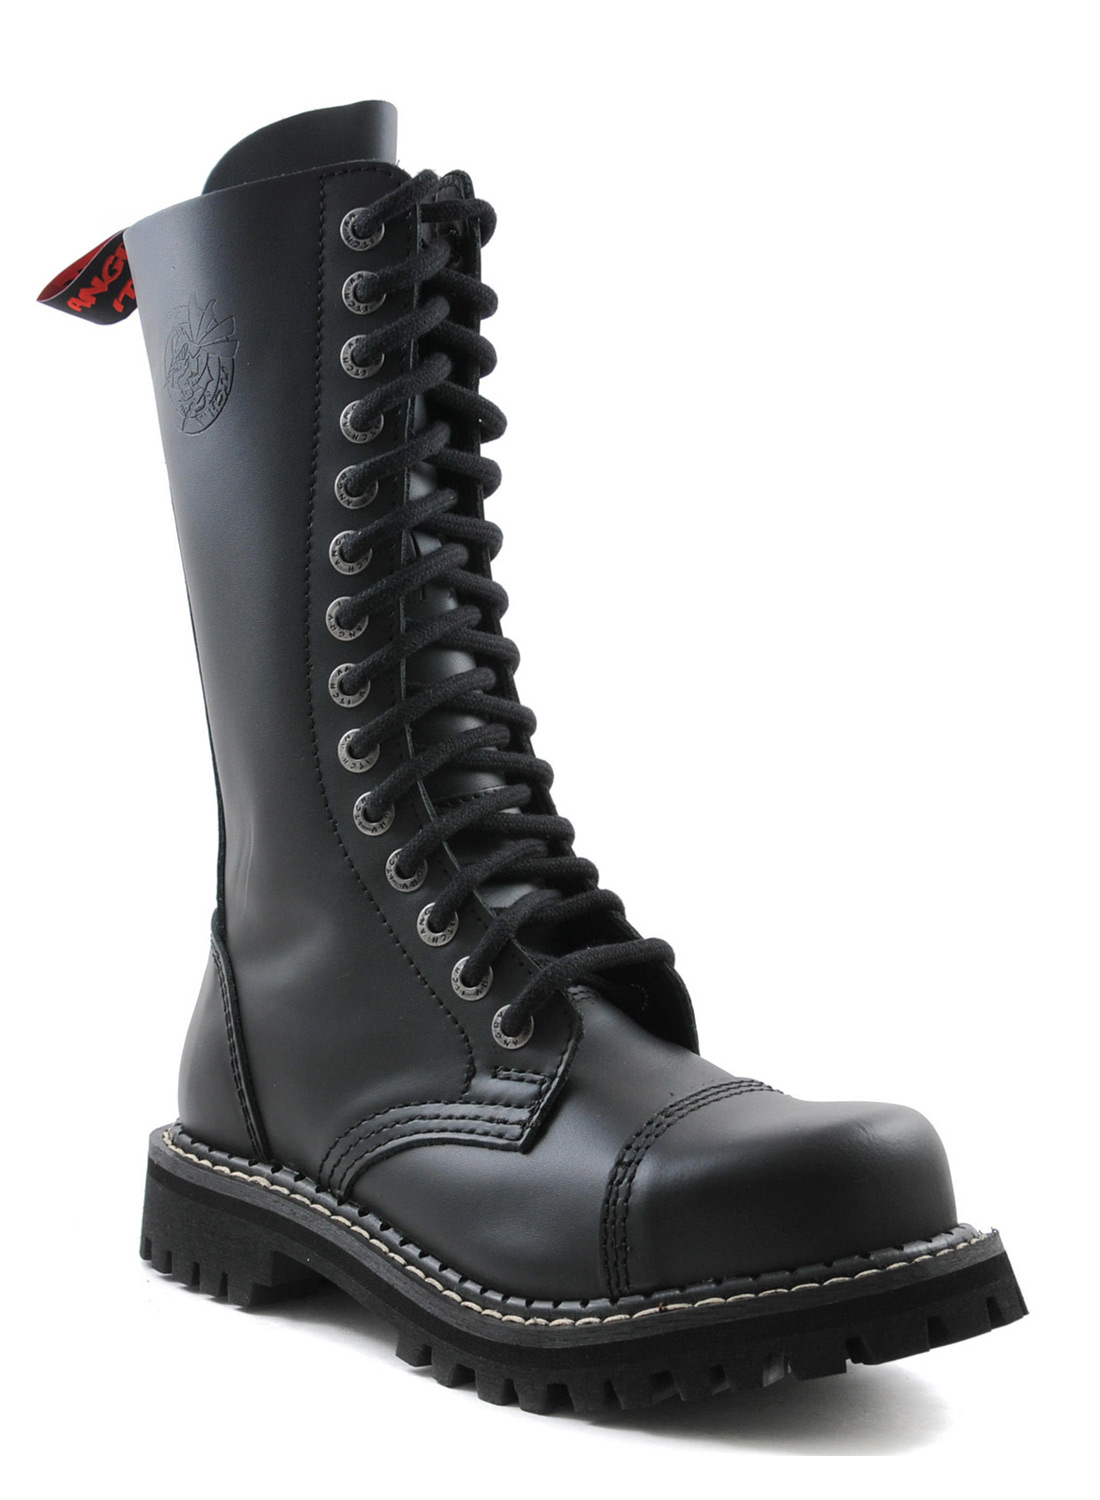 Angry Itch 14 Eye Steel Toe Boots Black Leather